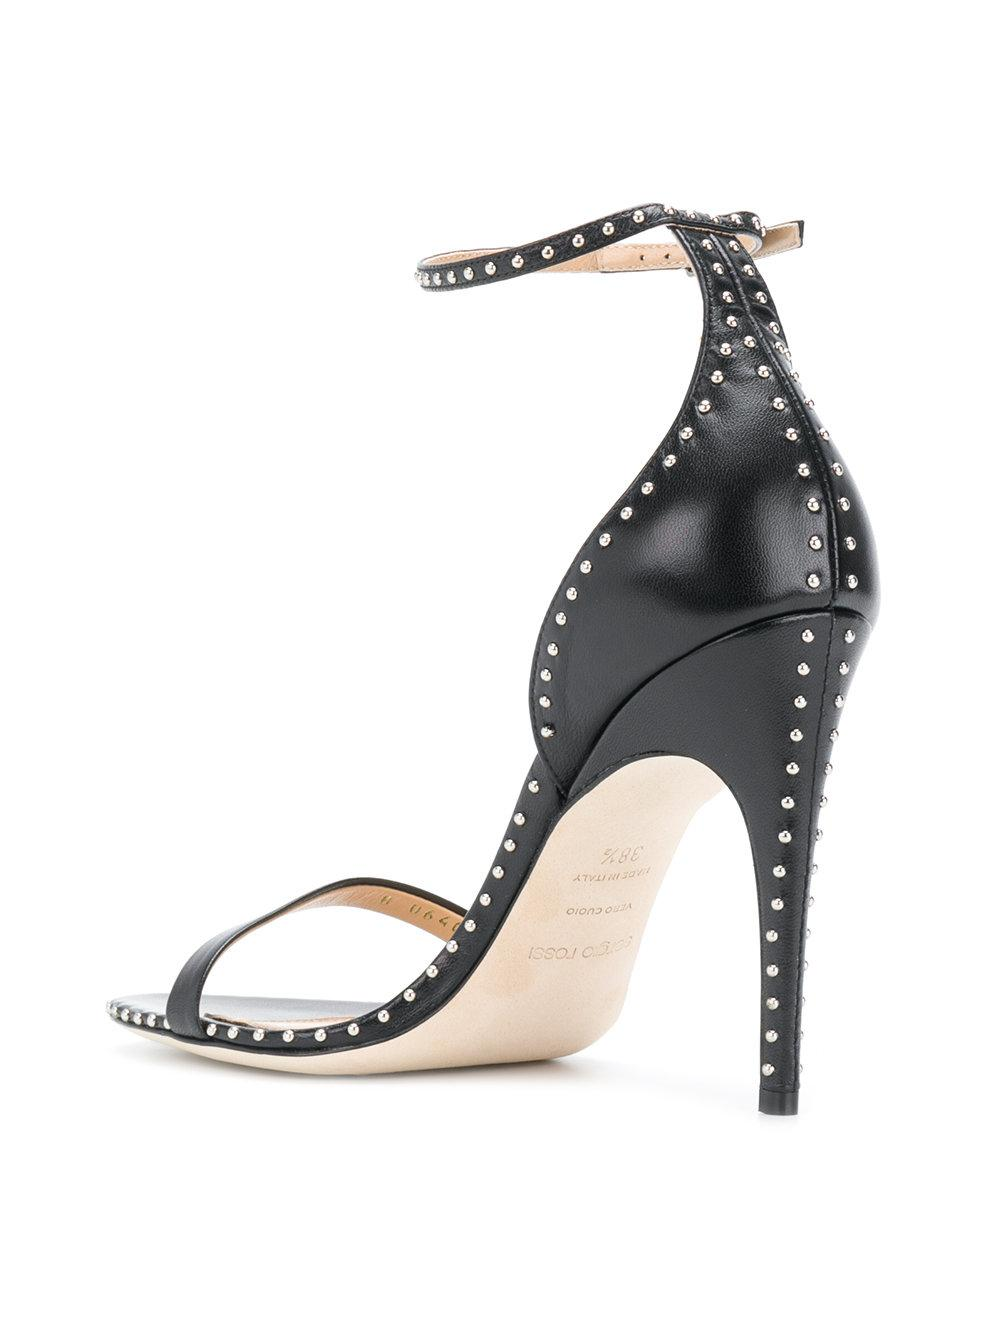 Sergio Rossi studded slingback sandals lowest price discount huge surprise sale factory outlet discount 2014 Js0Lc1sX